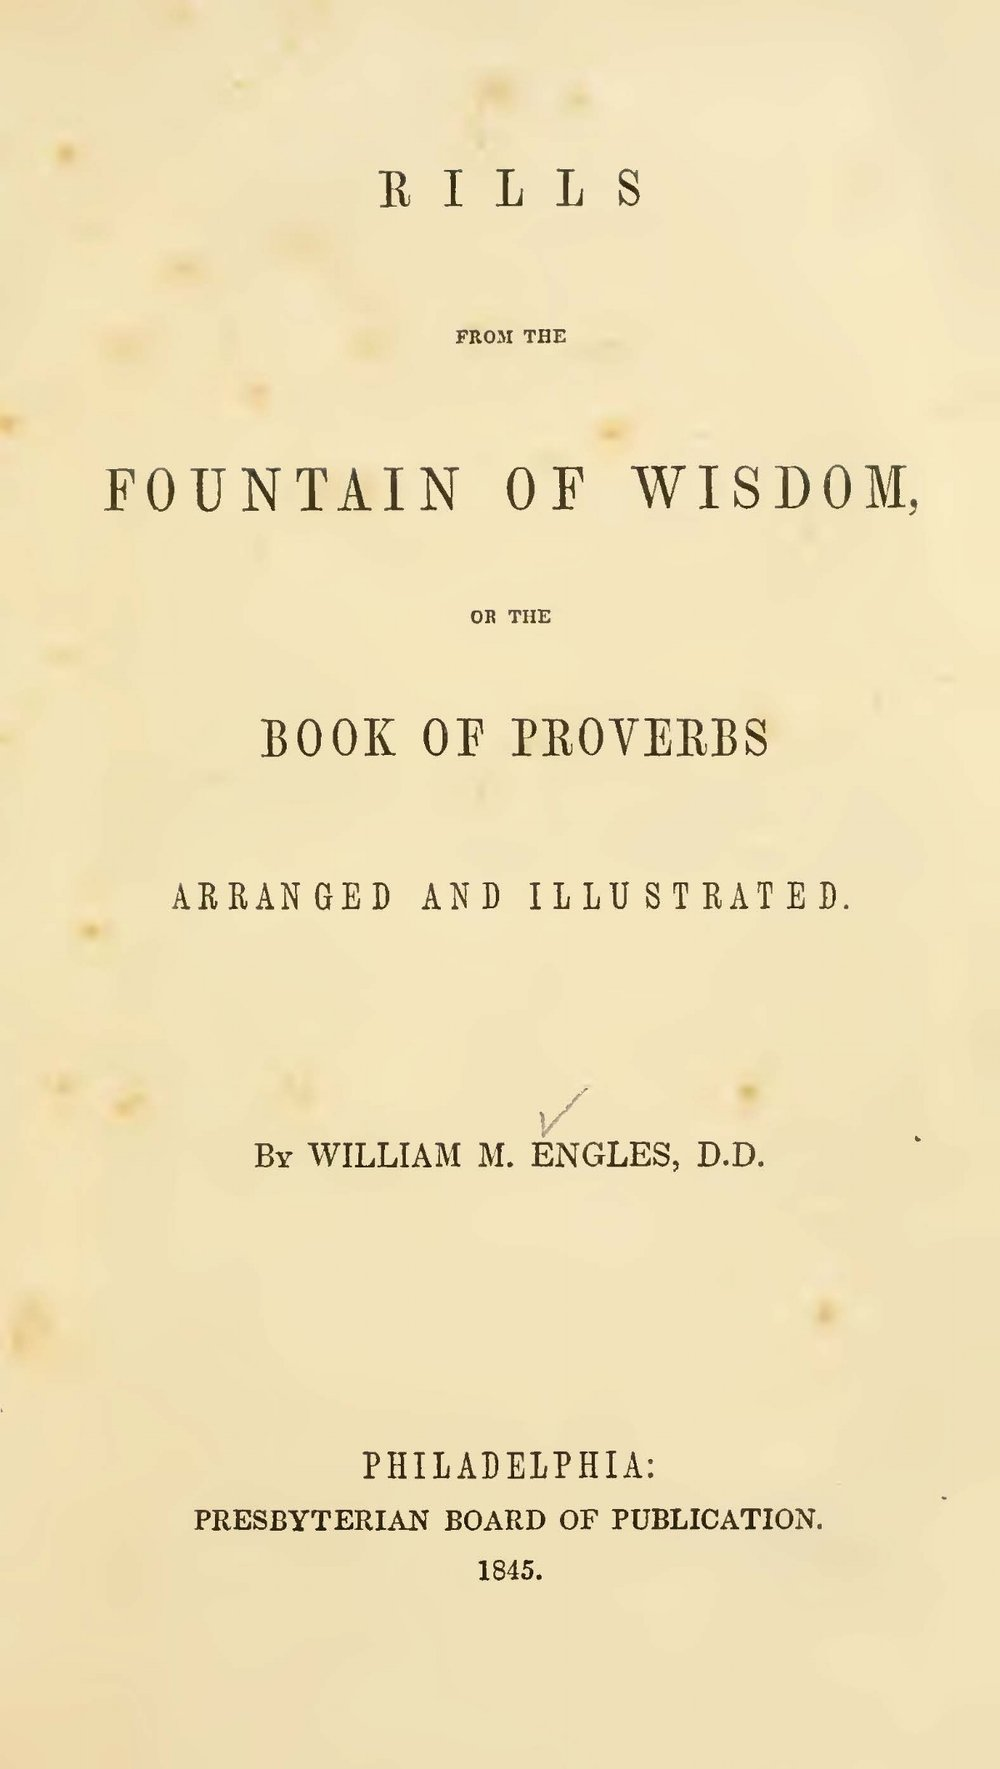 Engles, William Morrison, Rills From the Fountain of Wisdom or, the Book of Proverbs Arranged and Illustrated Title Page.jpg